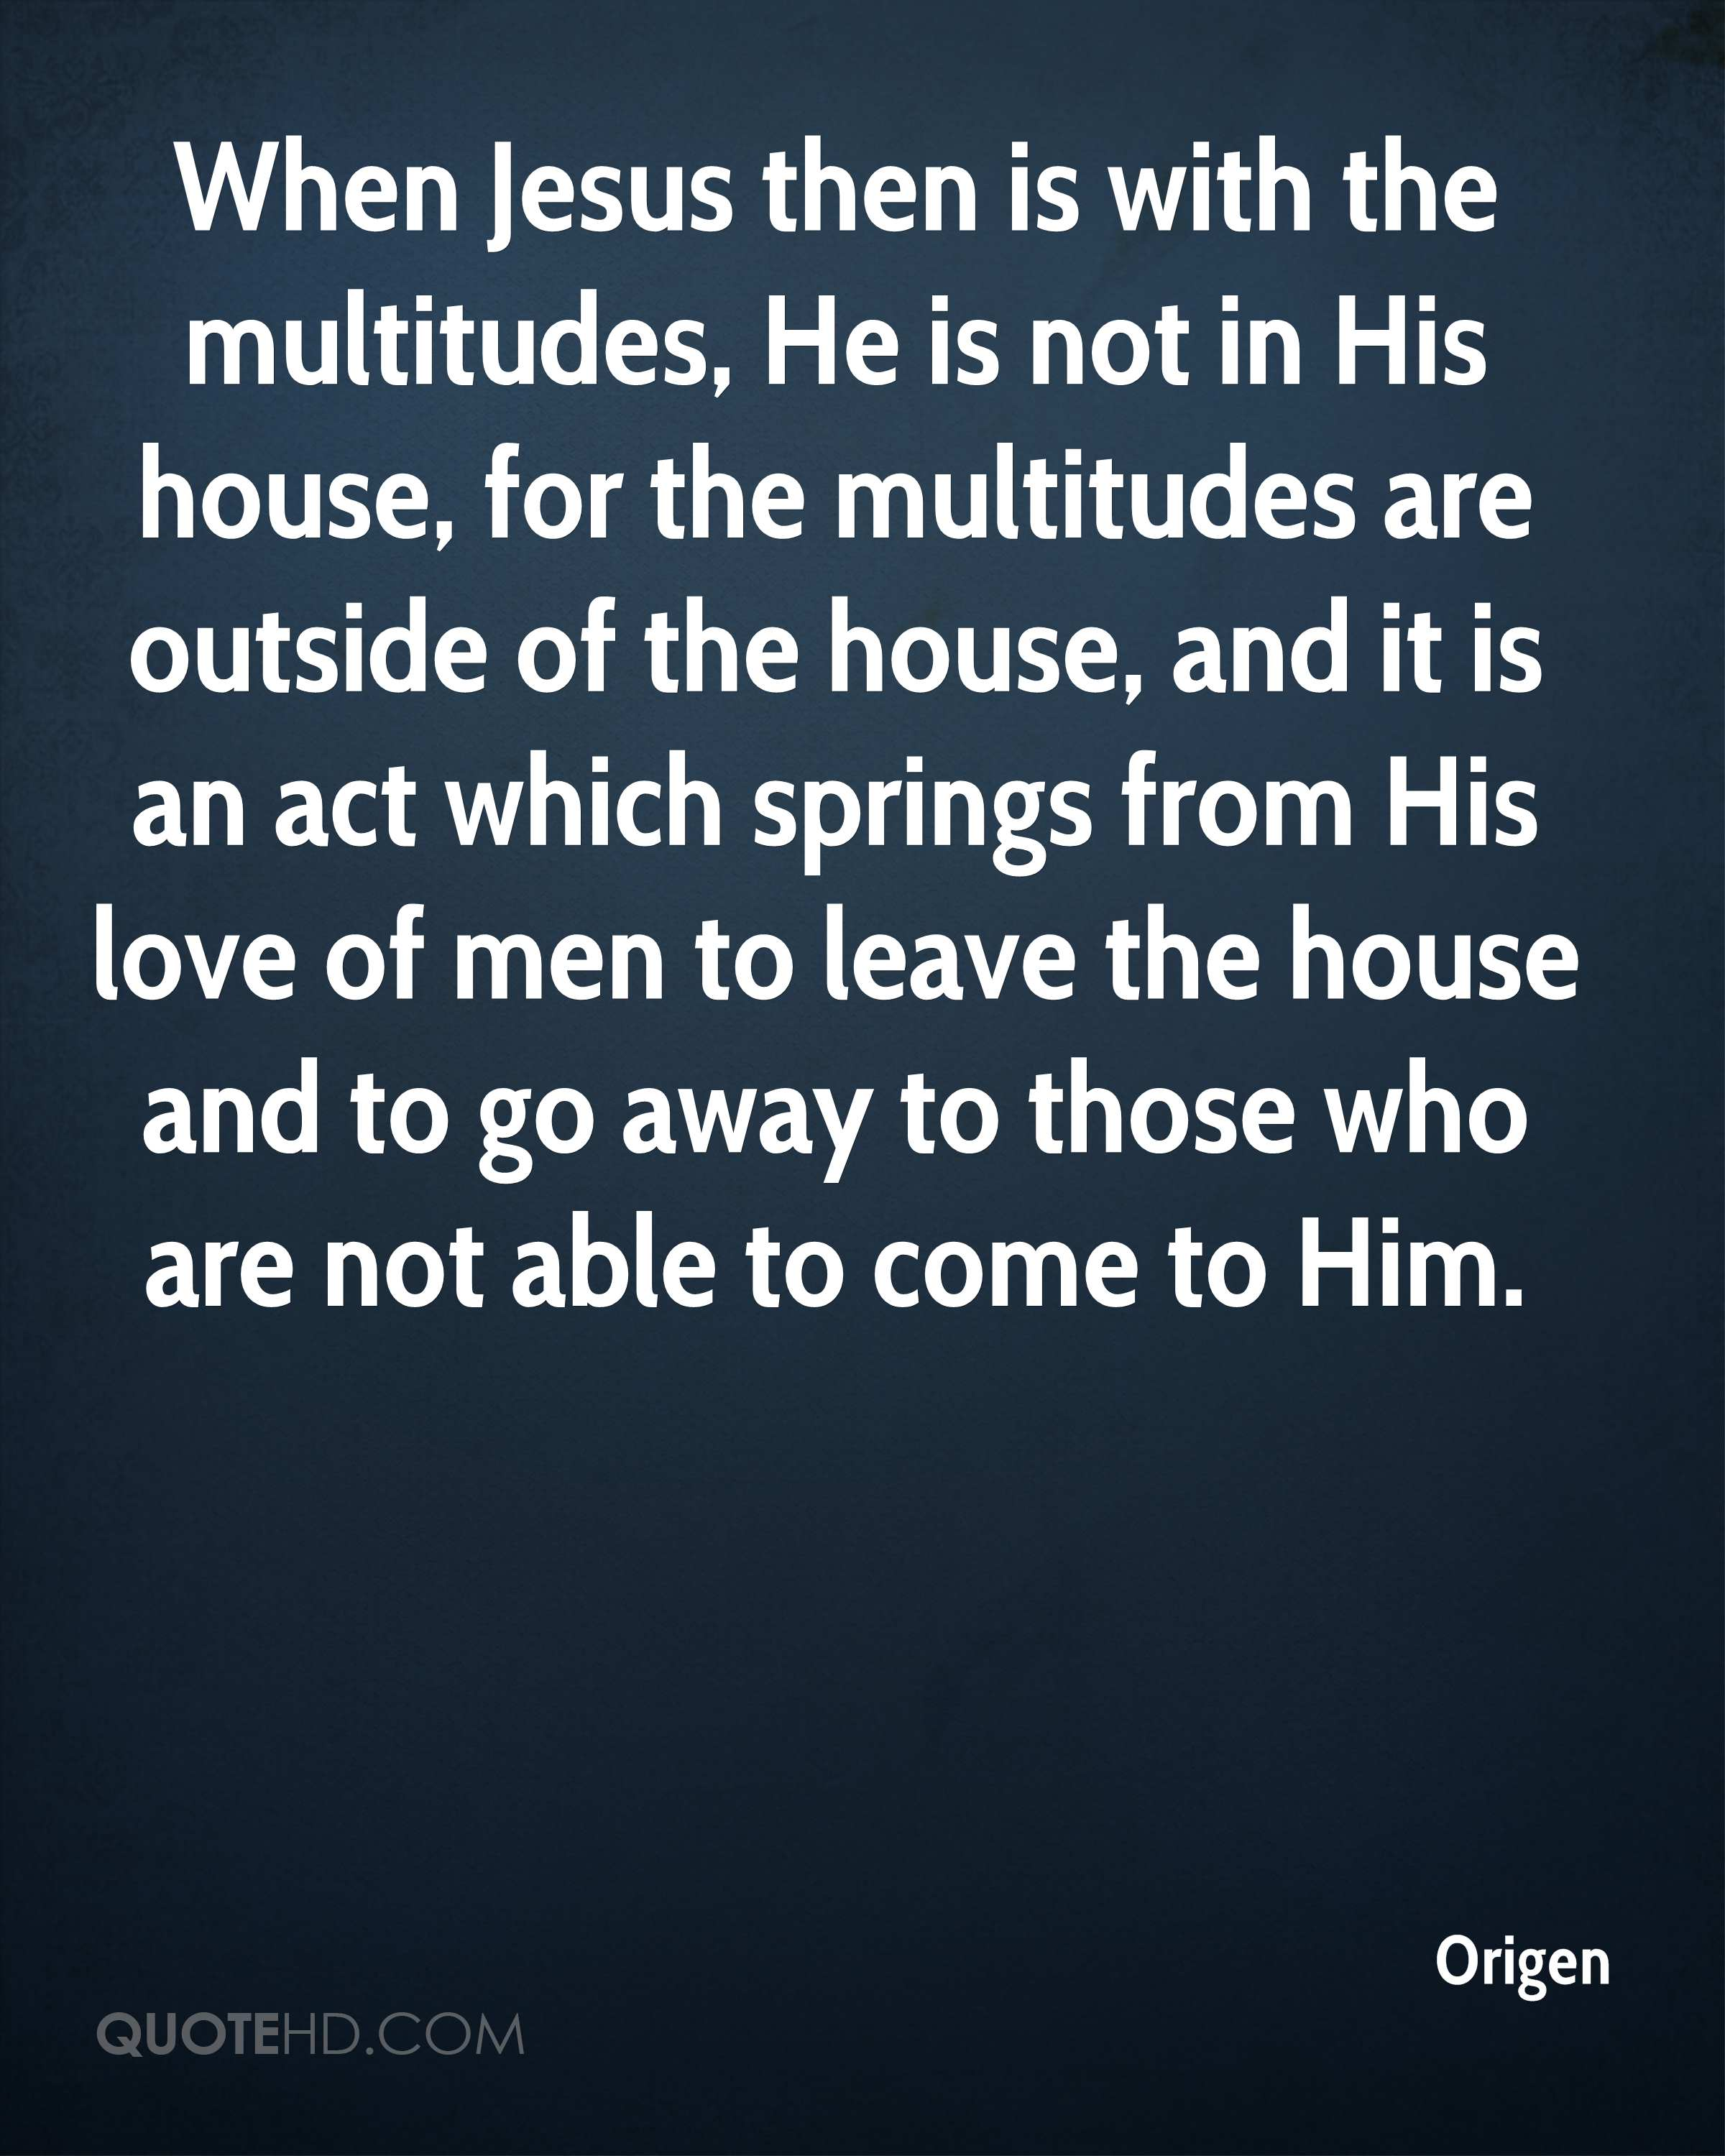 When Jesus then is with the multitudes, He is not in His house, for the multitudes are outside of the house, and it is an act which springs from His love of men to leave the house and to go away to those who are not able to come to Him.